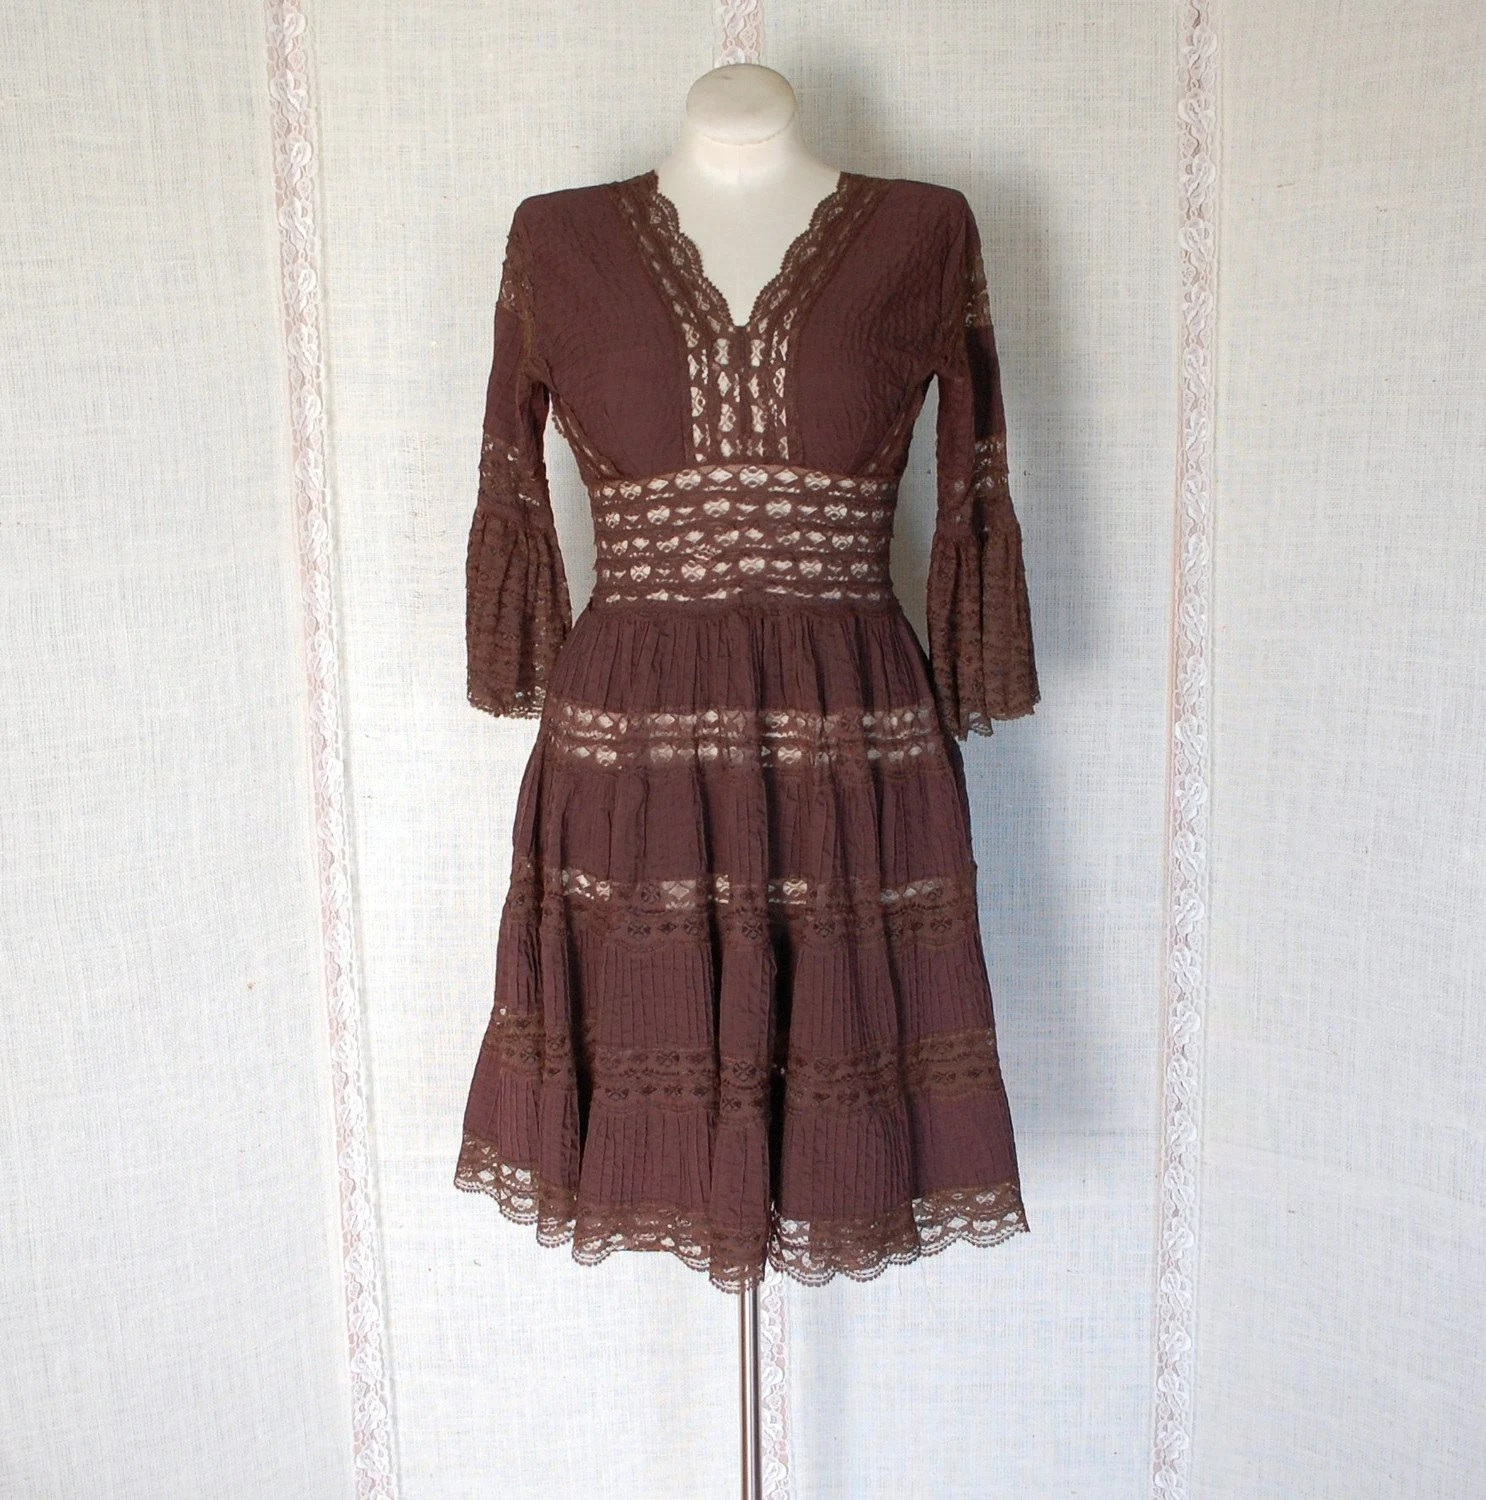 Vintage Mexican Chocolate Dress